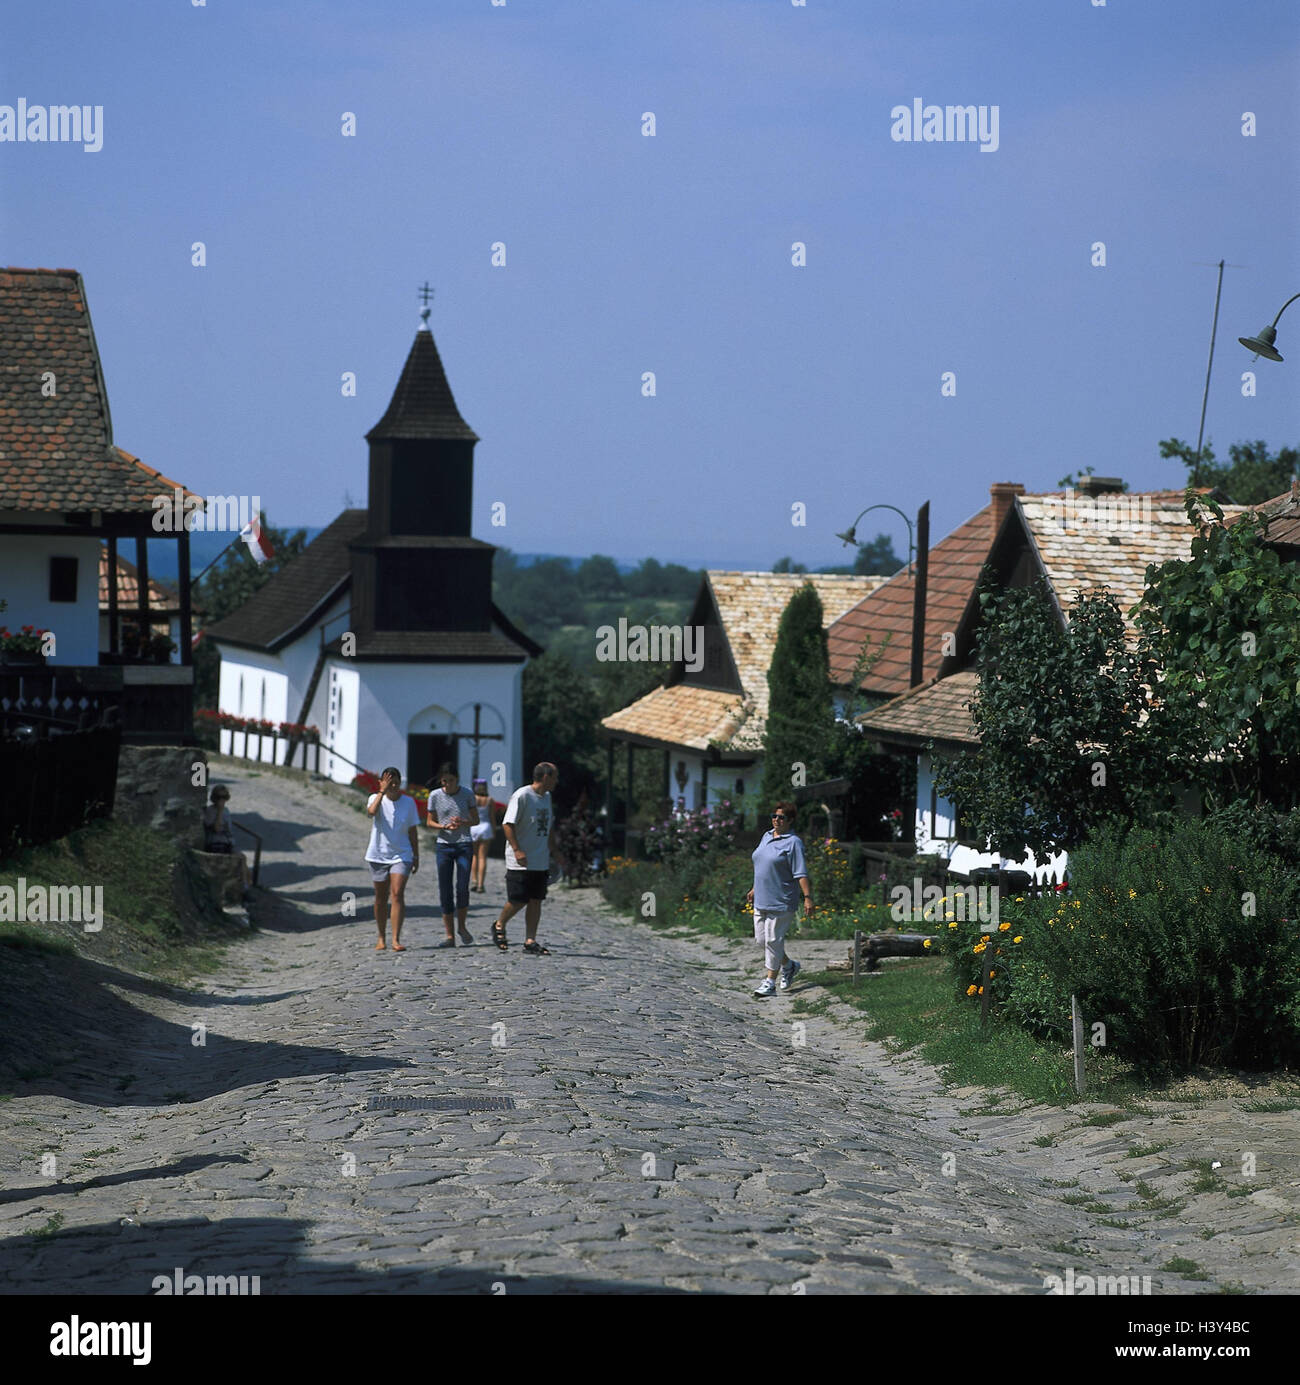 Hungary, Holloko, local view, church, lane, pedestrian, Hollokö, raven stone, local view, parish church, wooden - Stock Image